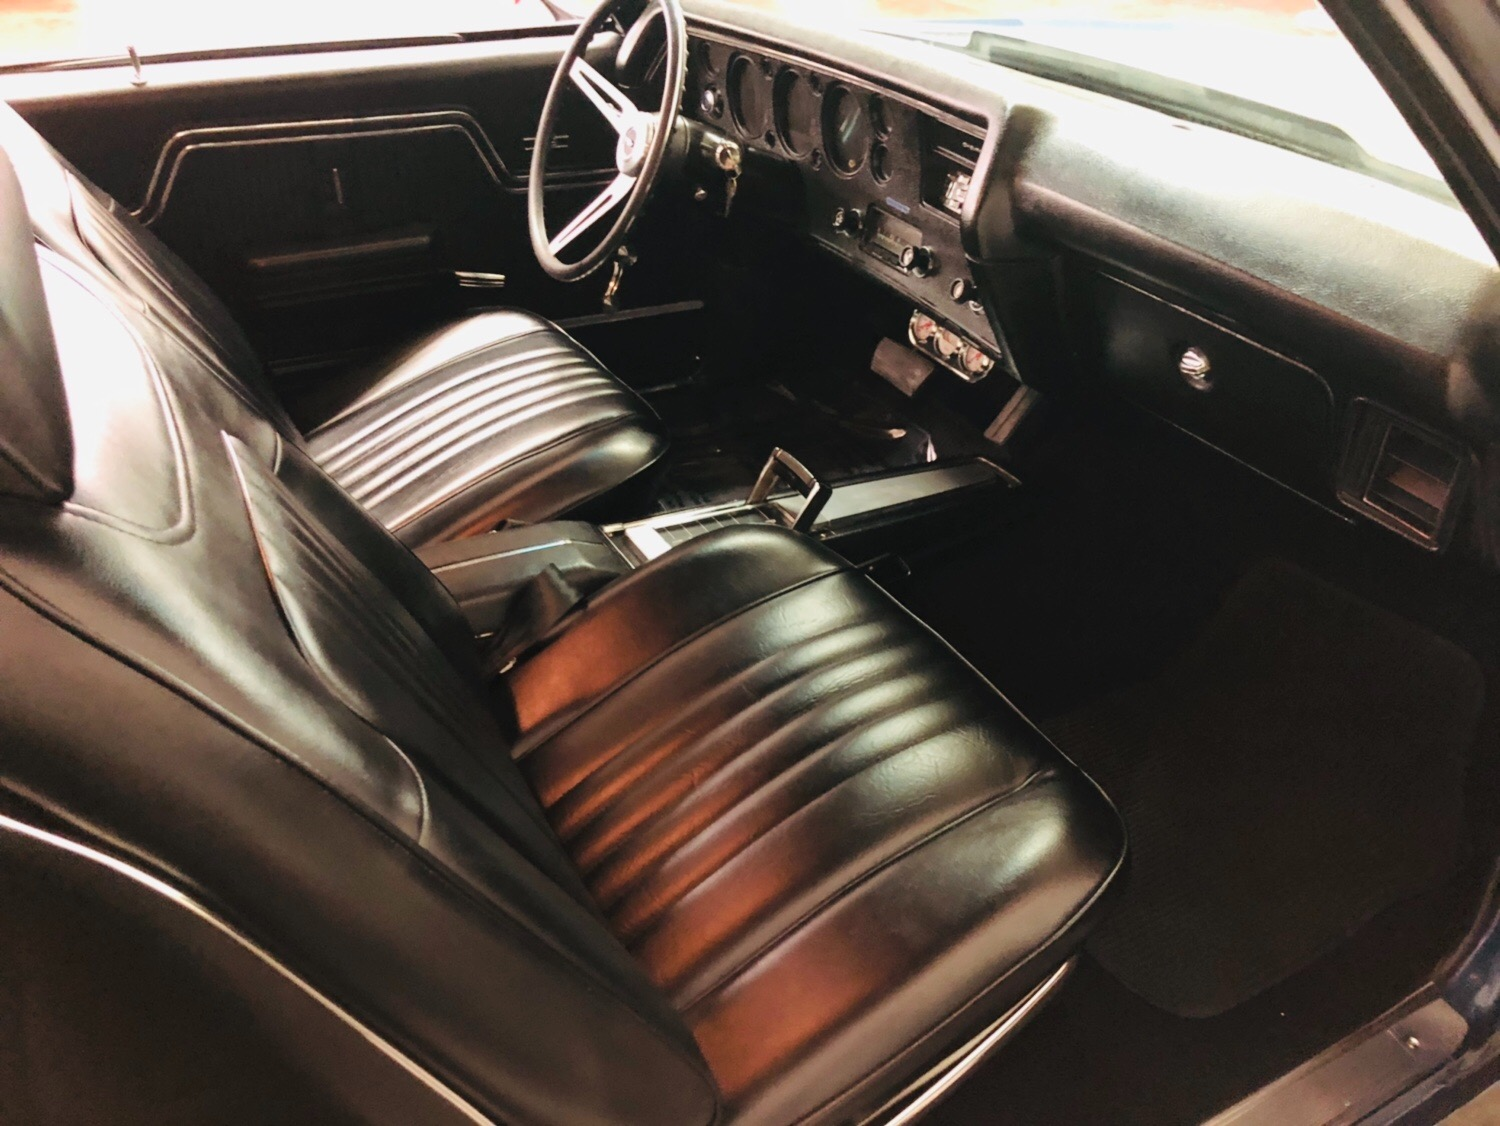 Used 1971 Chevrolet Chevelle -SS BIG BLOCK - AUTO TRANS - FACTORY BUCKETS AND CONSOLE - SEE VIDEO | Mundelein, IL